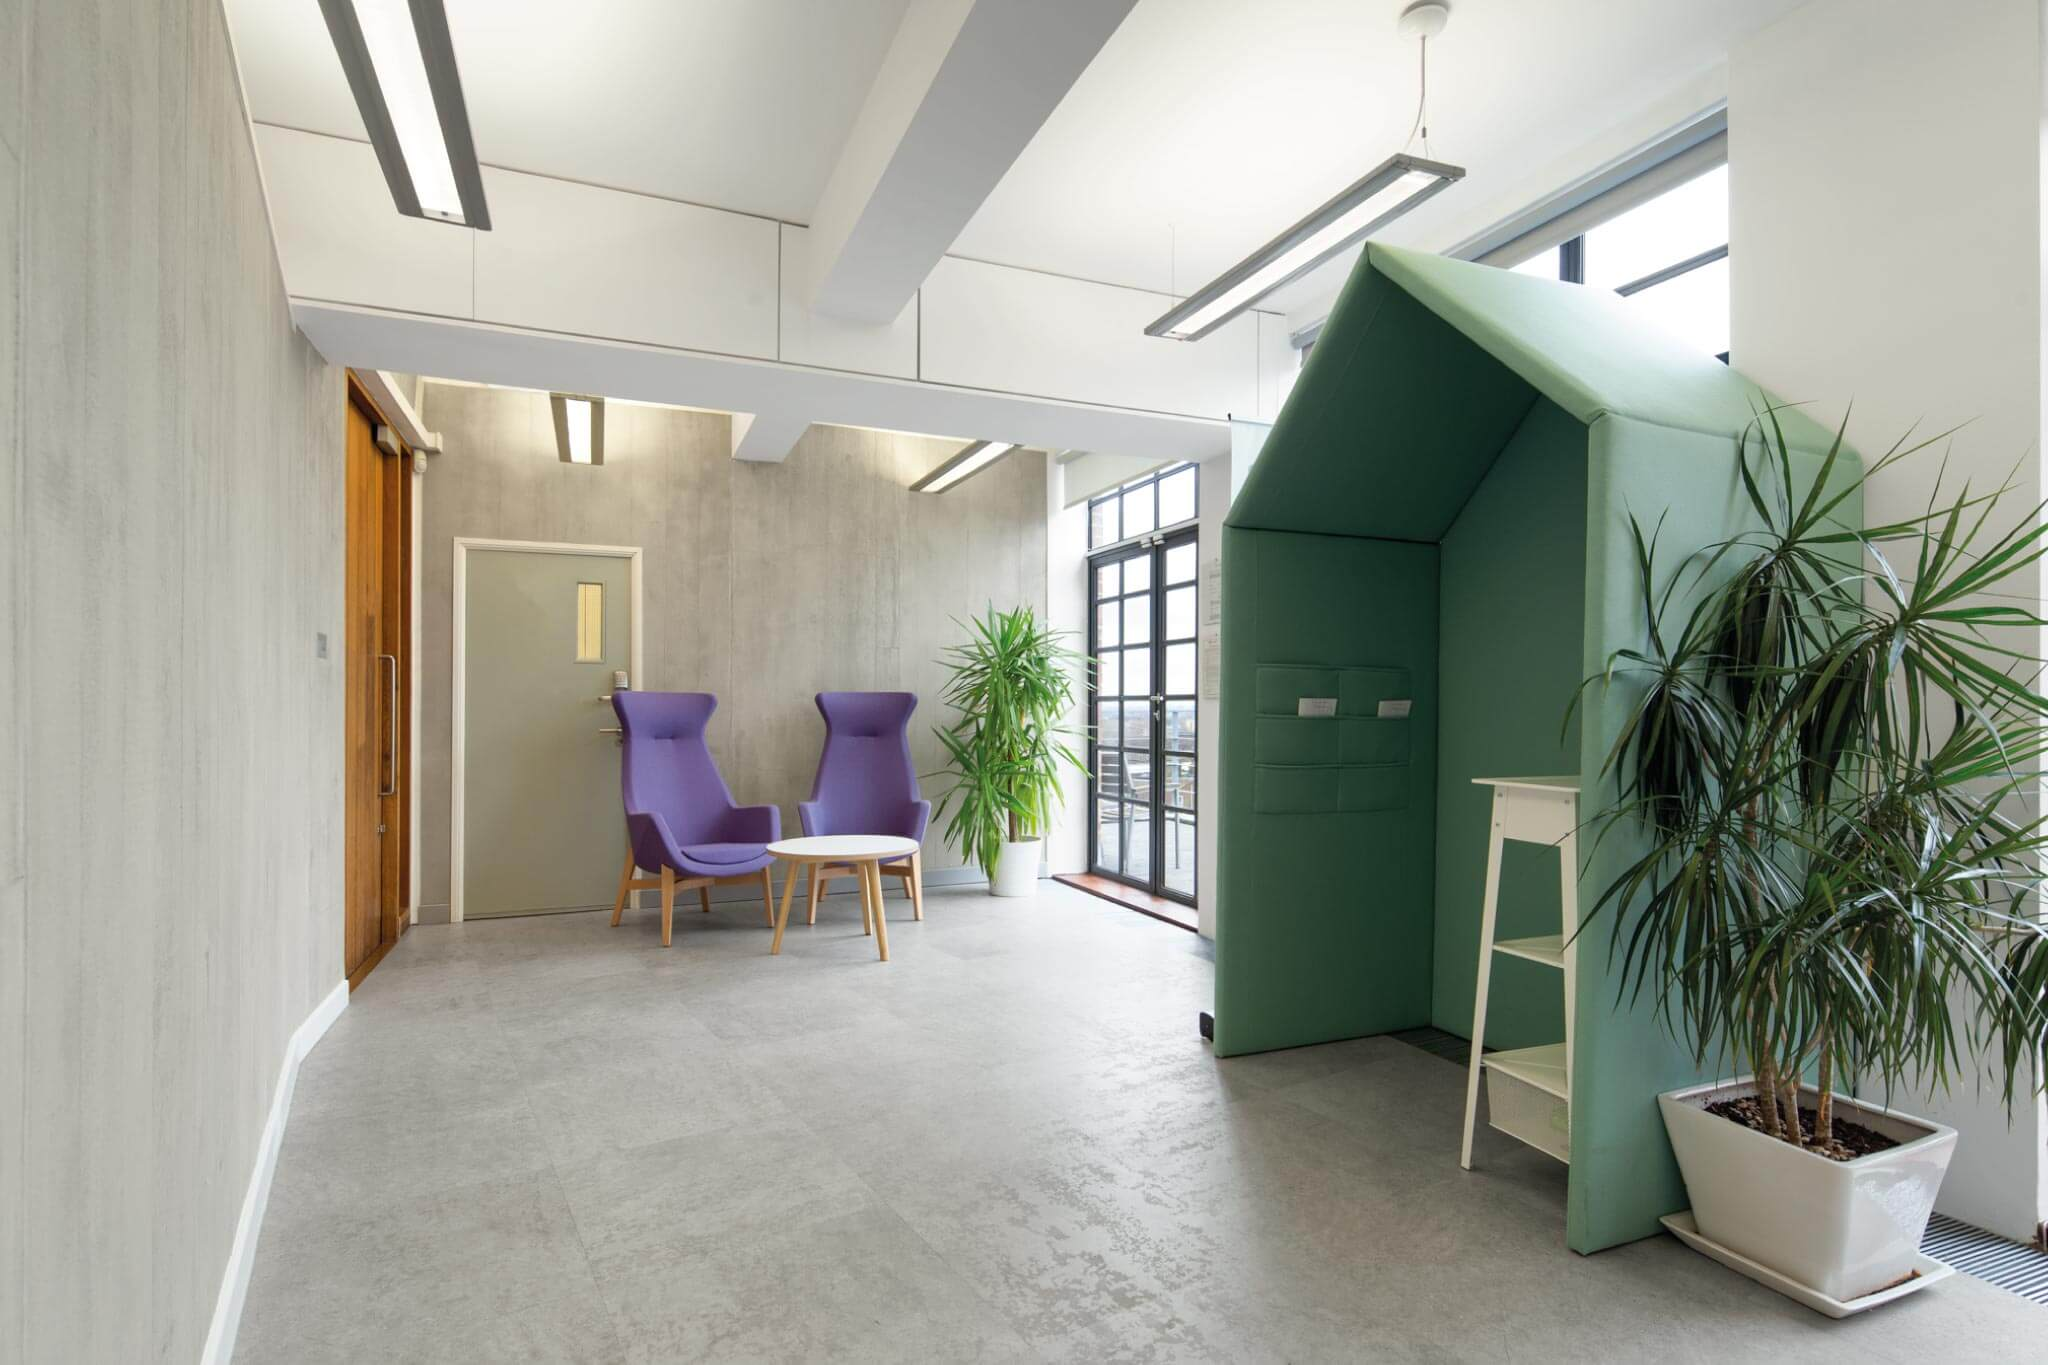 Servelec---London---Dale-Office-Interiors----Breakout-Areas--2019